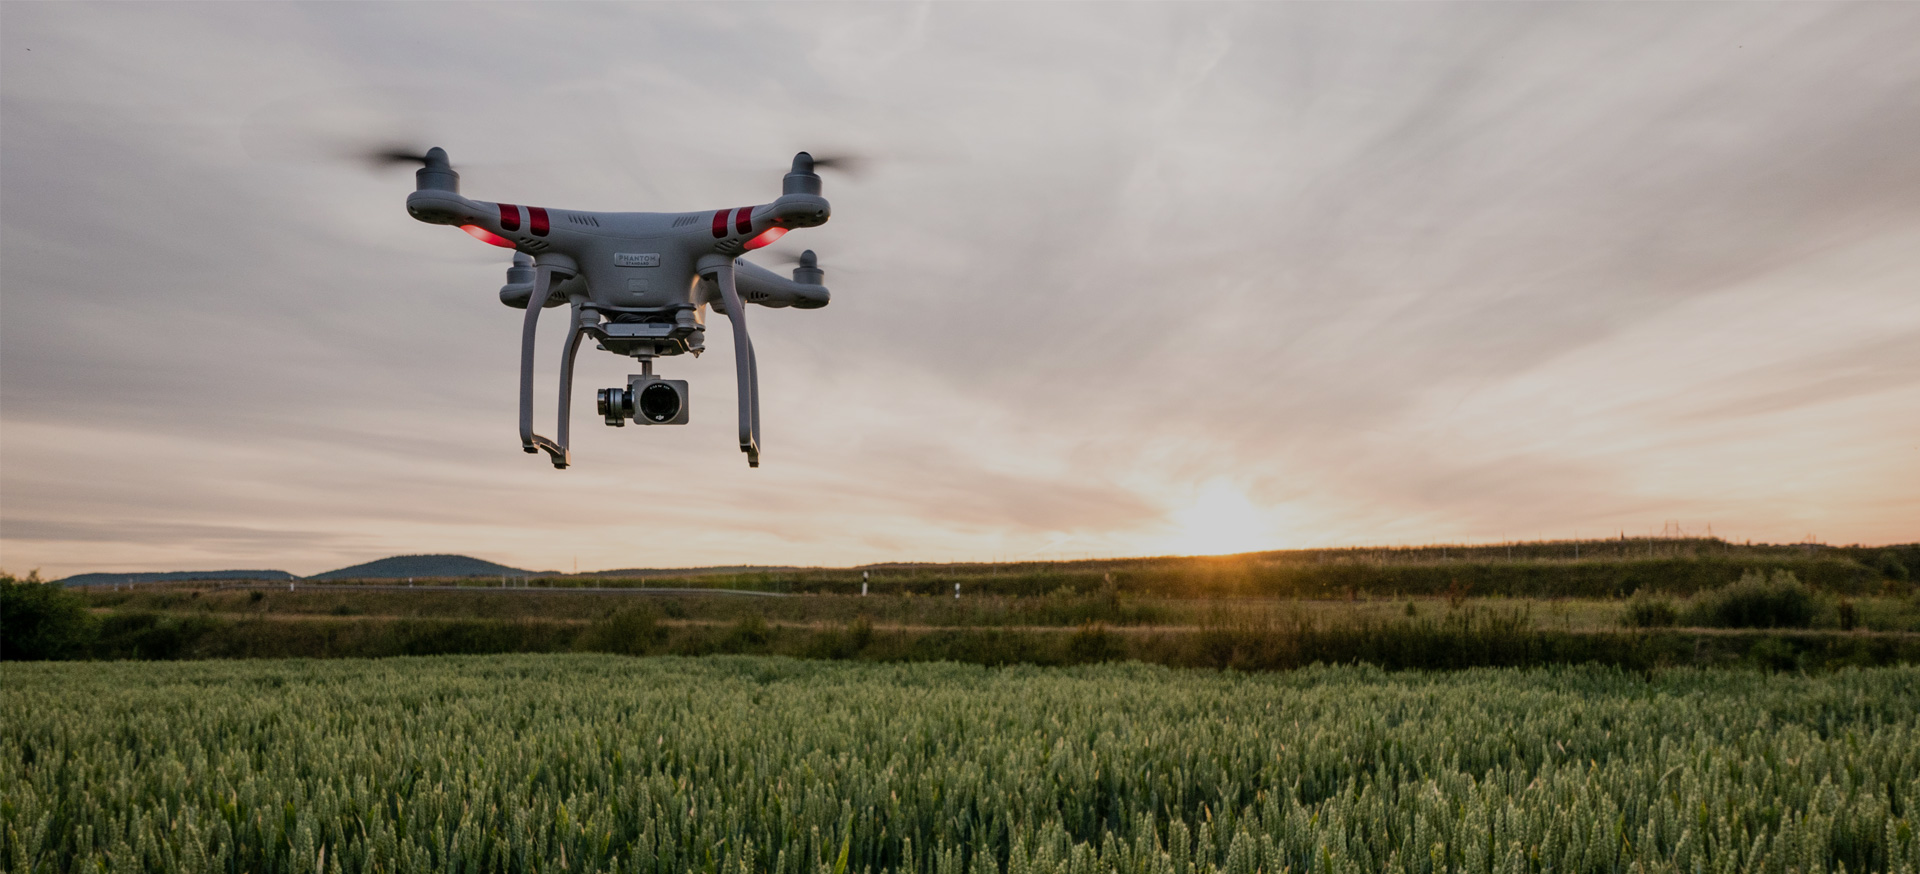 Agribotix uses drones to aid farmers in surveying crops to increase production quantity and yield.